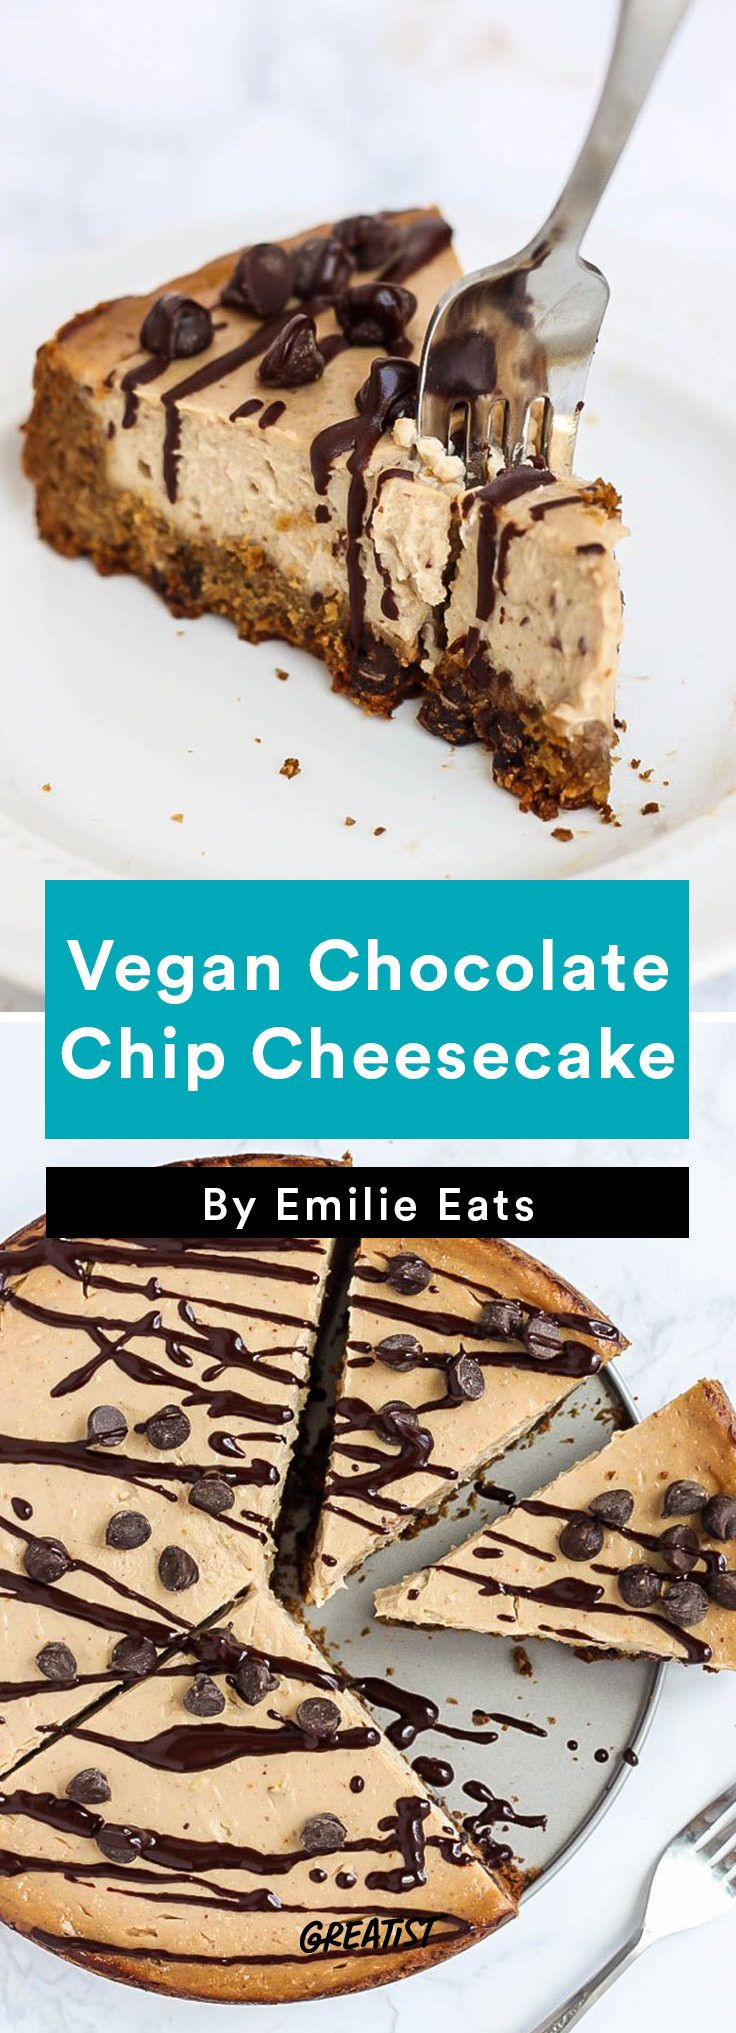 Tofu Recipes: Vegan Chocolate Chip Cheesecake